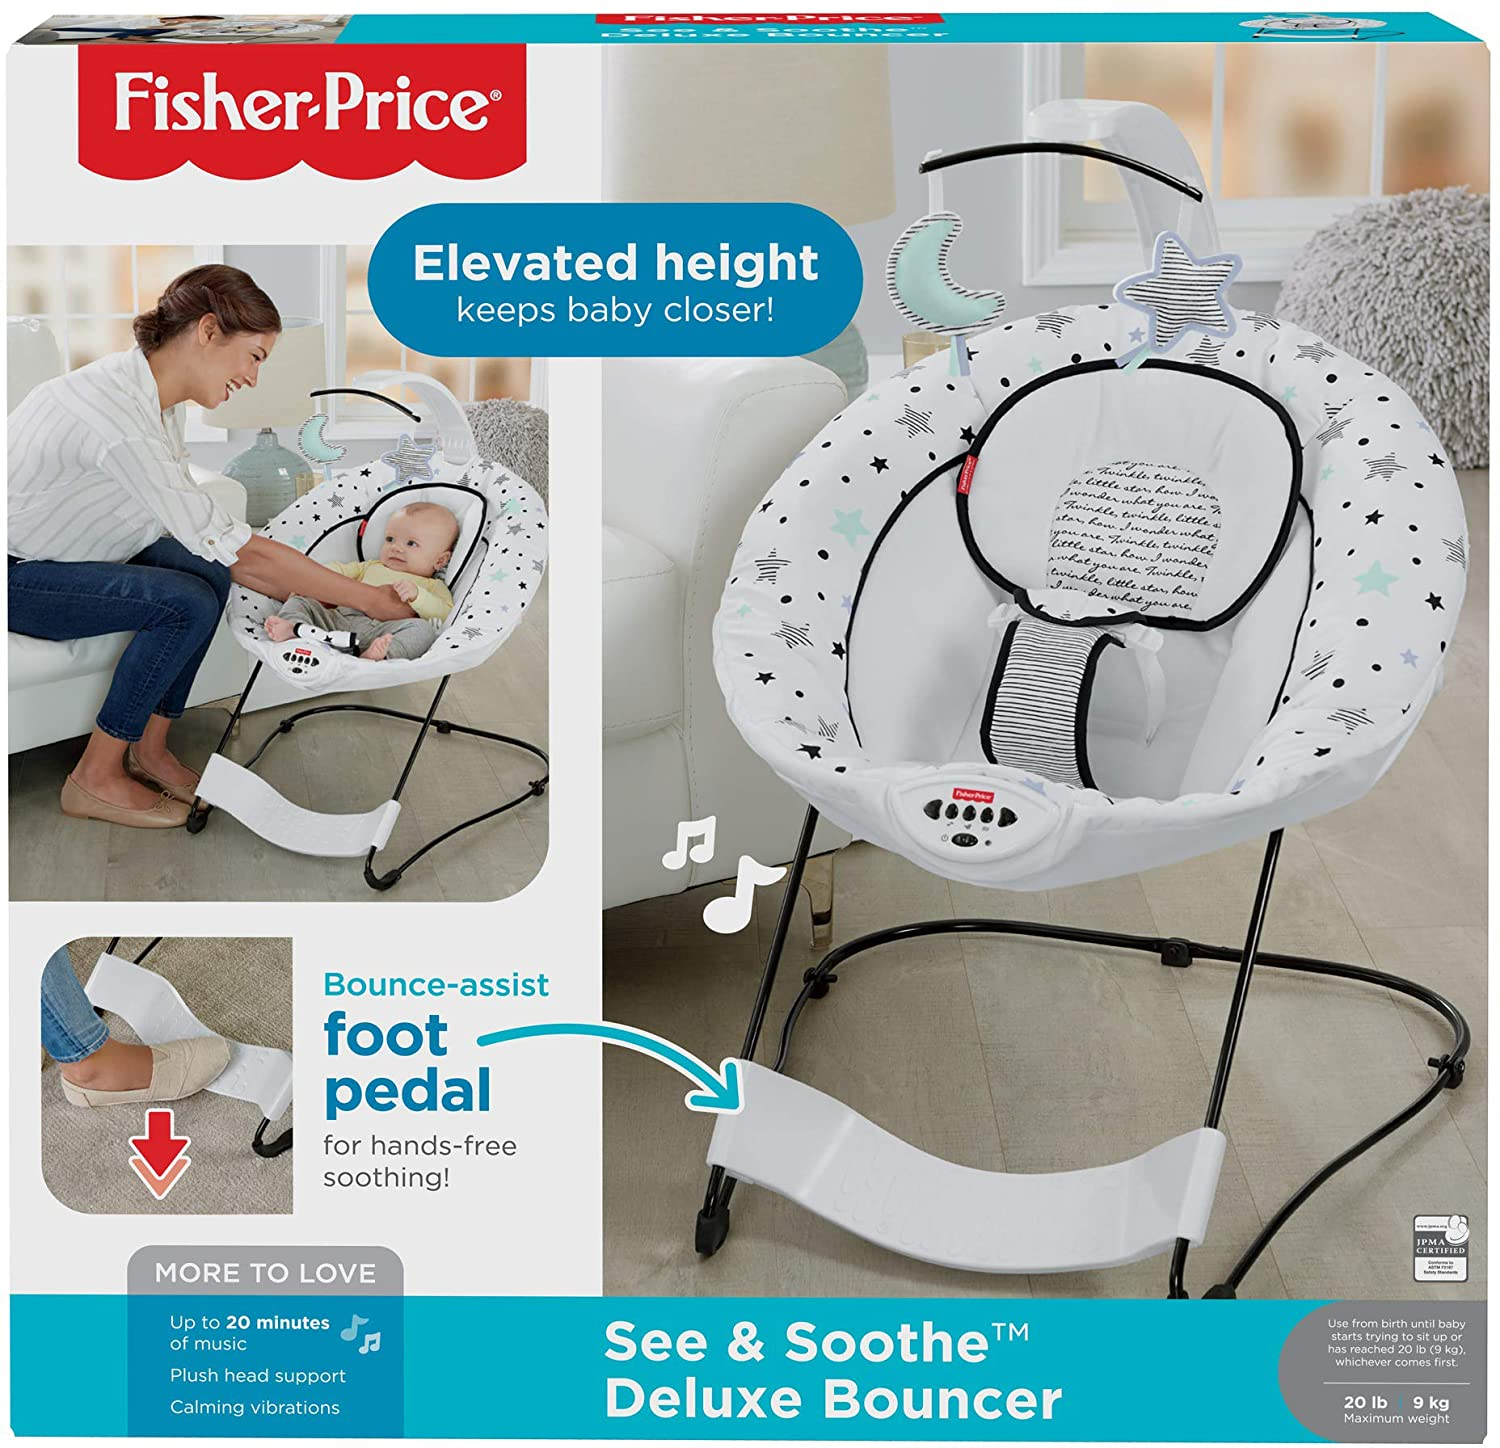 Starry Night See /& Soothe Fisher-Price Deluxe Bouncer